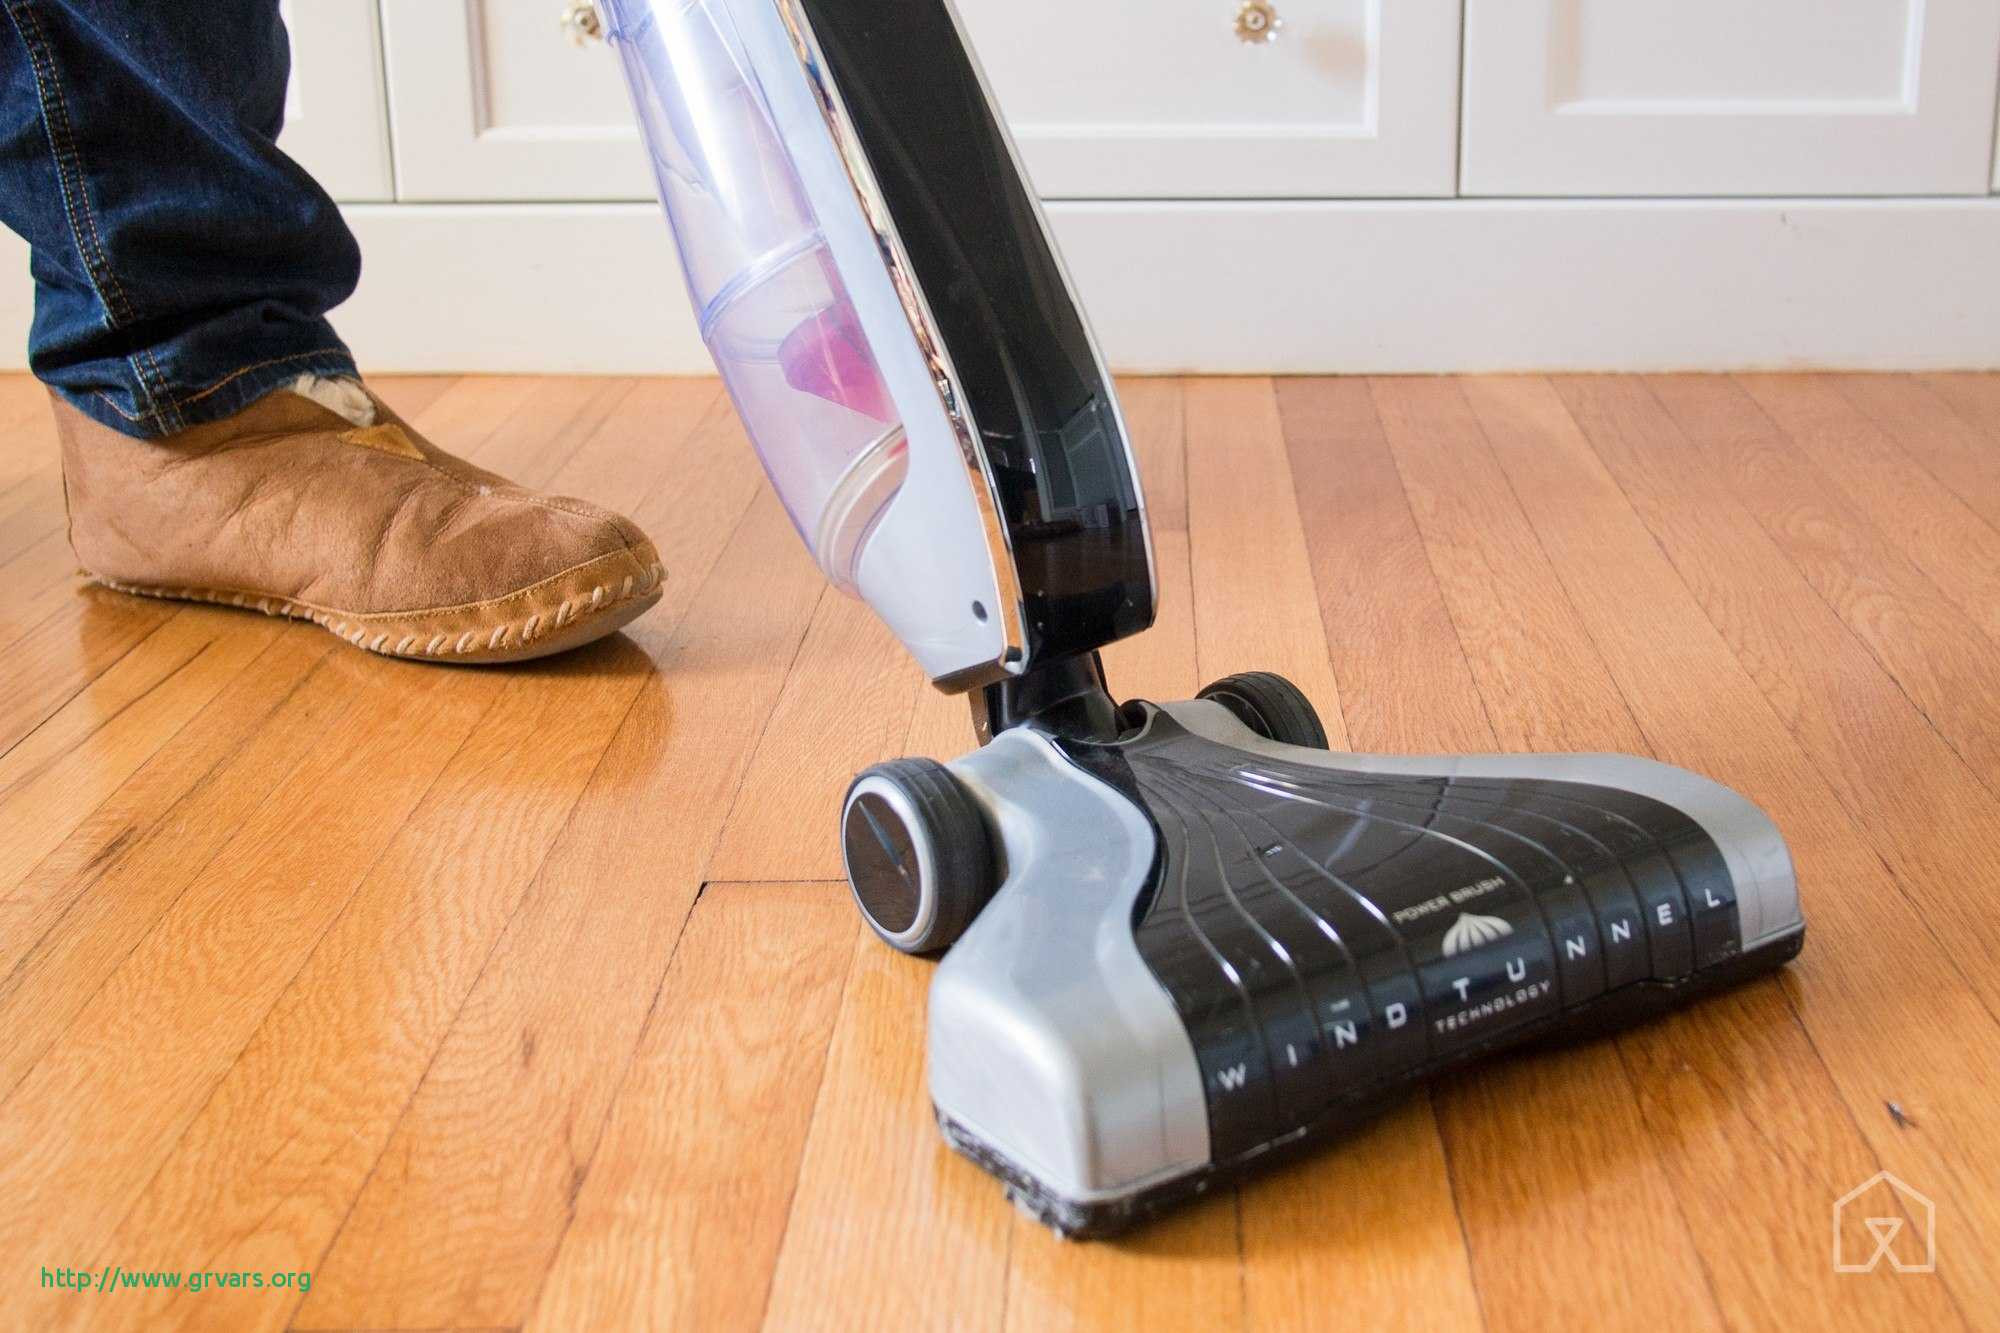 hardwood flooring questions of 22 charmant can you use a steam mop on hardwood floors ideas blog with can you use a steam mop on hardwood floors a‰lagant steam cleaners for hardwood floors